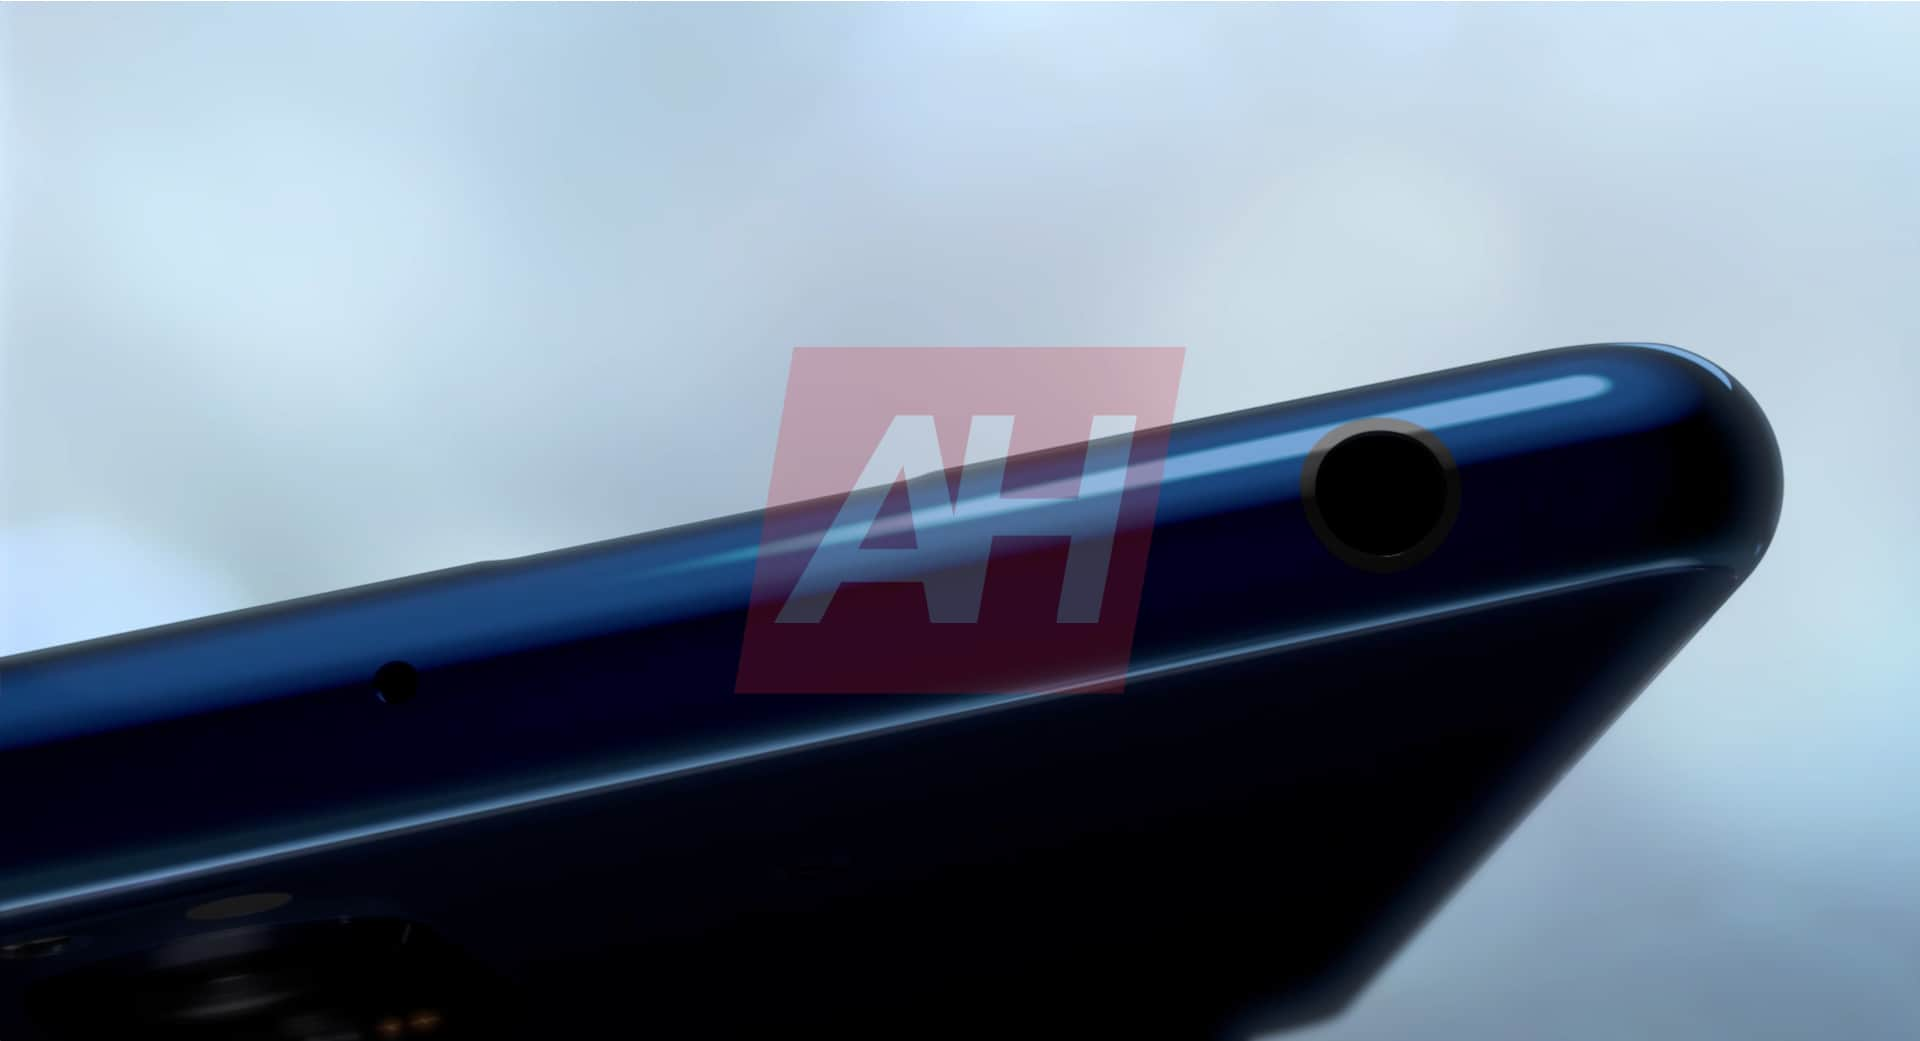 High-quality Sony Xperia 5 II press photos leaked